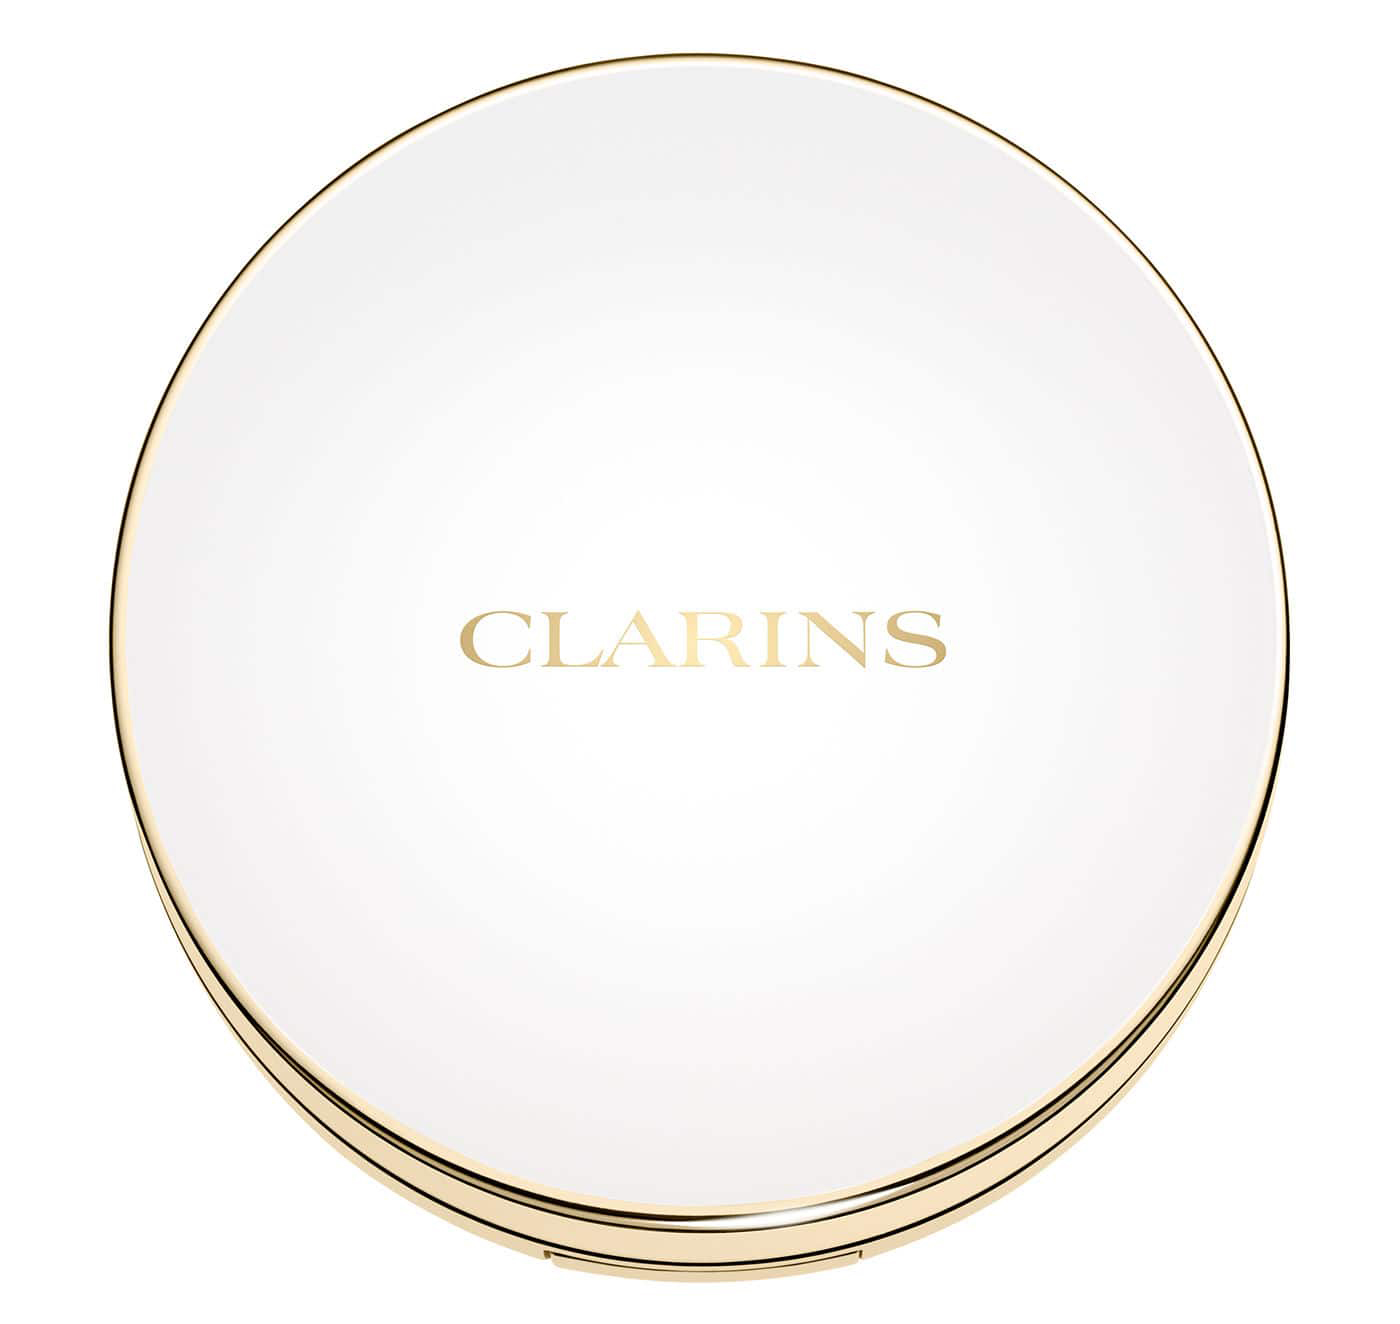 Clarins Everlasting Cushion Foundation SPF 50  (1)